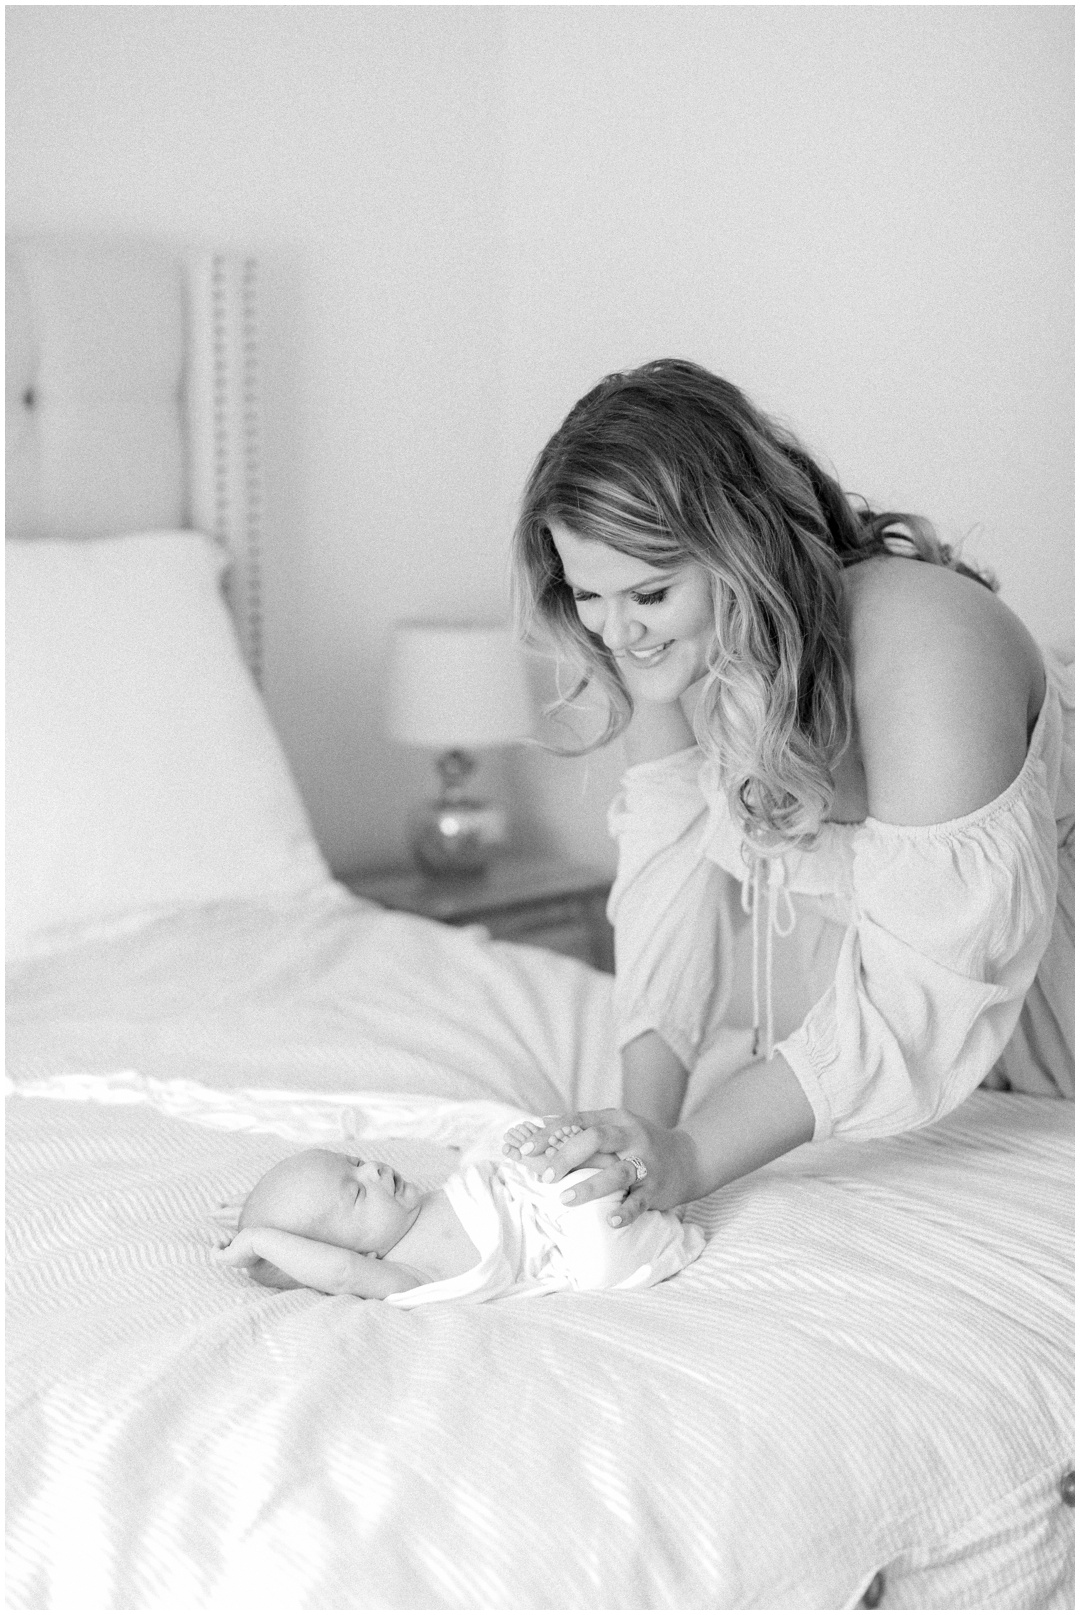 Newport_Beach_Newborn_Light_Airy_Natural_Photographer_Newport_Beach_In-Home_Photographer_Orange_County_Family_Photographer_Cori_Kleckner_Photography_Huntington_Beach_Photographer_Family_OC_Newborn_Meghan_Sullivan_Newborn_Family_Greer_Sullivan_3248.jpg